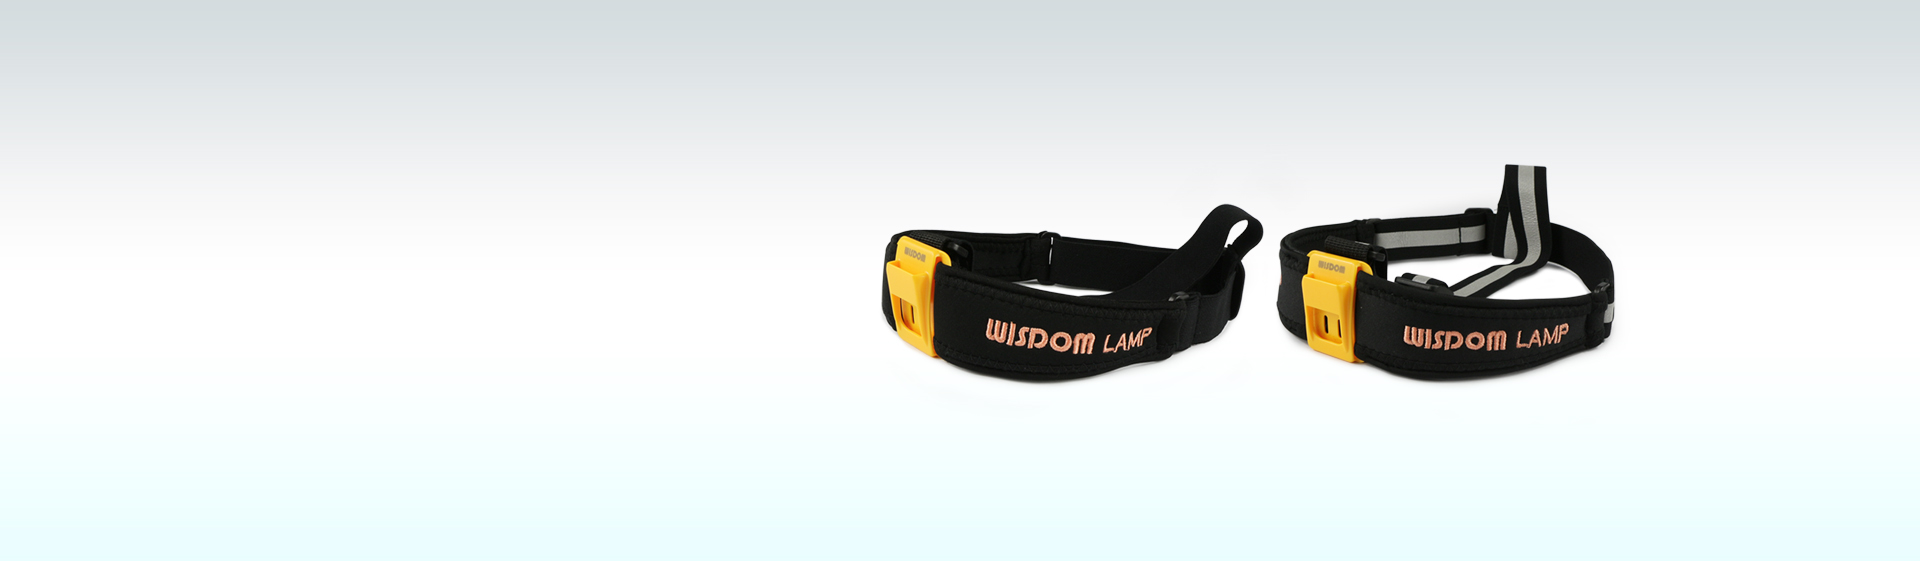 WISDOM Multi-purpose Lamp Accessories: Head Strap